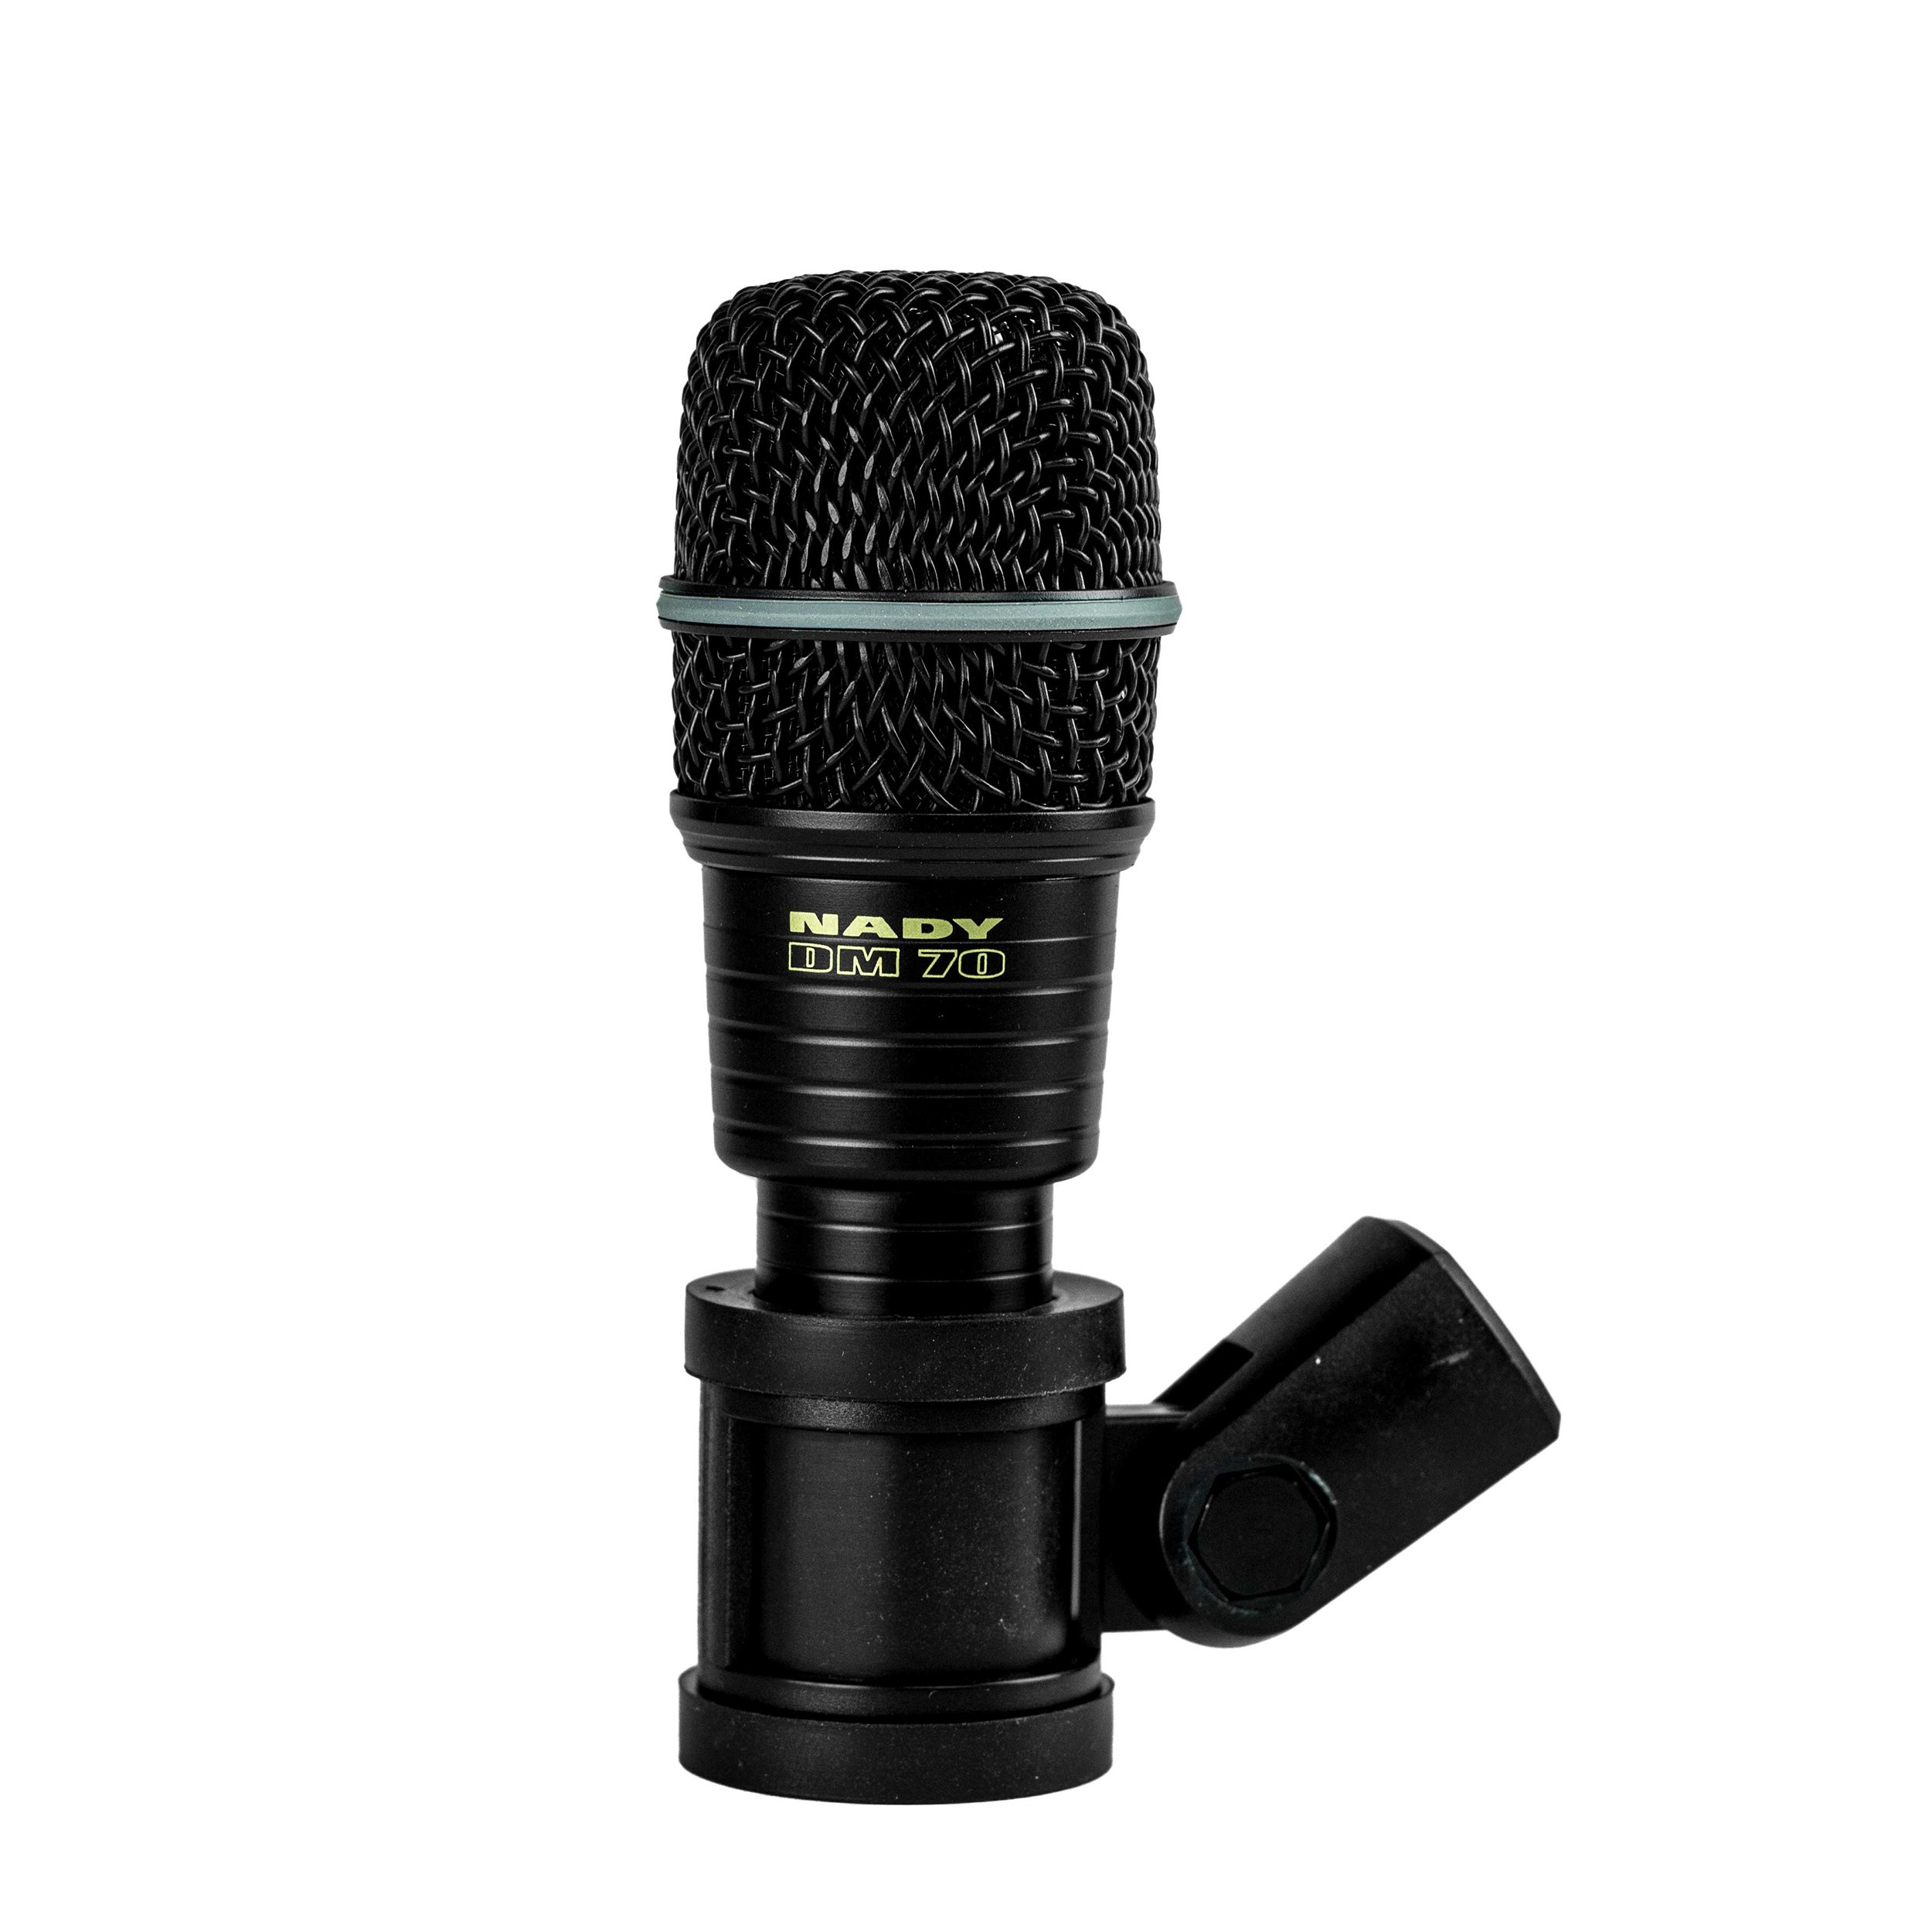 Nady DM-70 Drum Microphone - Cardioid Pattern, Neodymium Element, All-Metal Construction and Rubber Mount to minimize Vibration by Nady